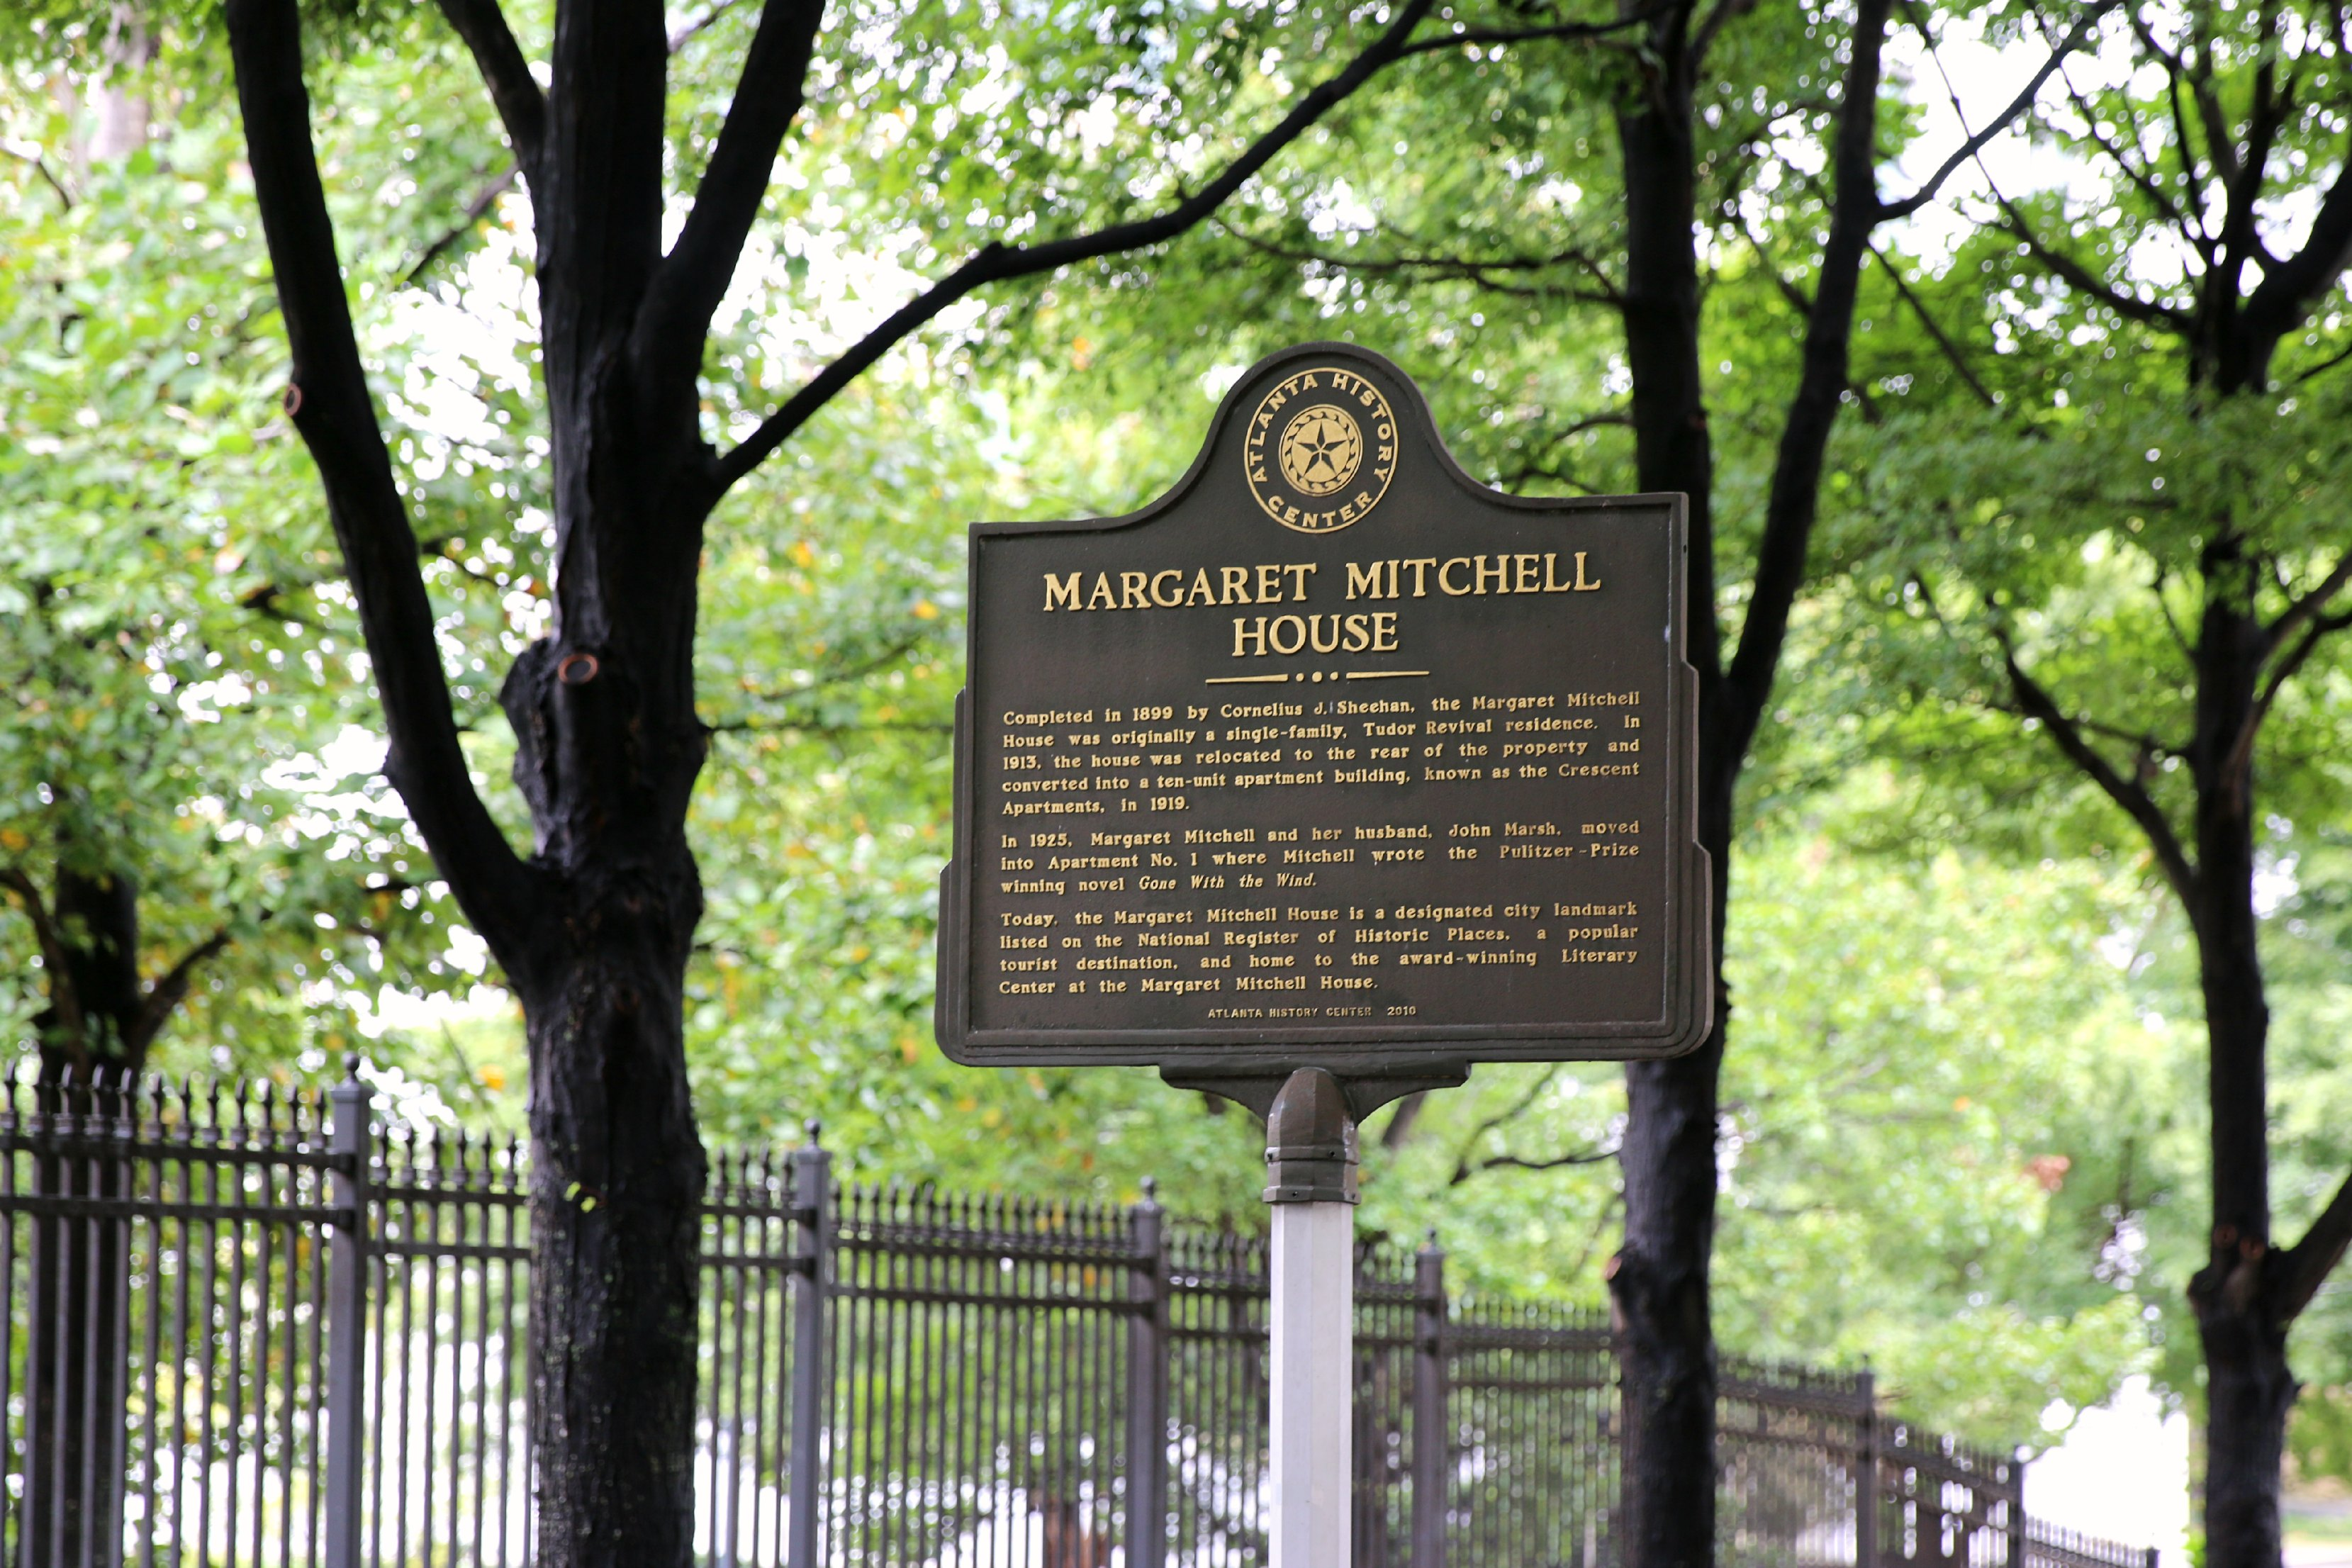 margaret mitchell house tour